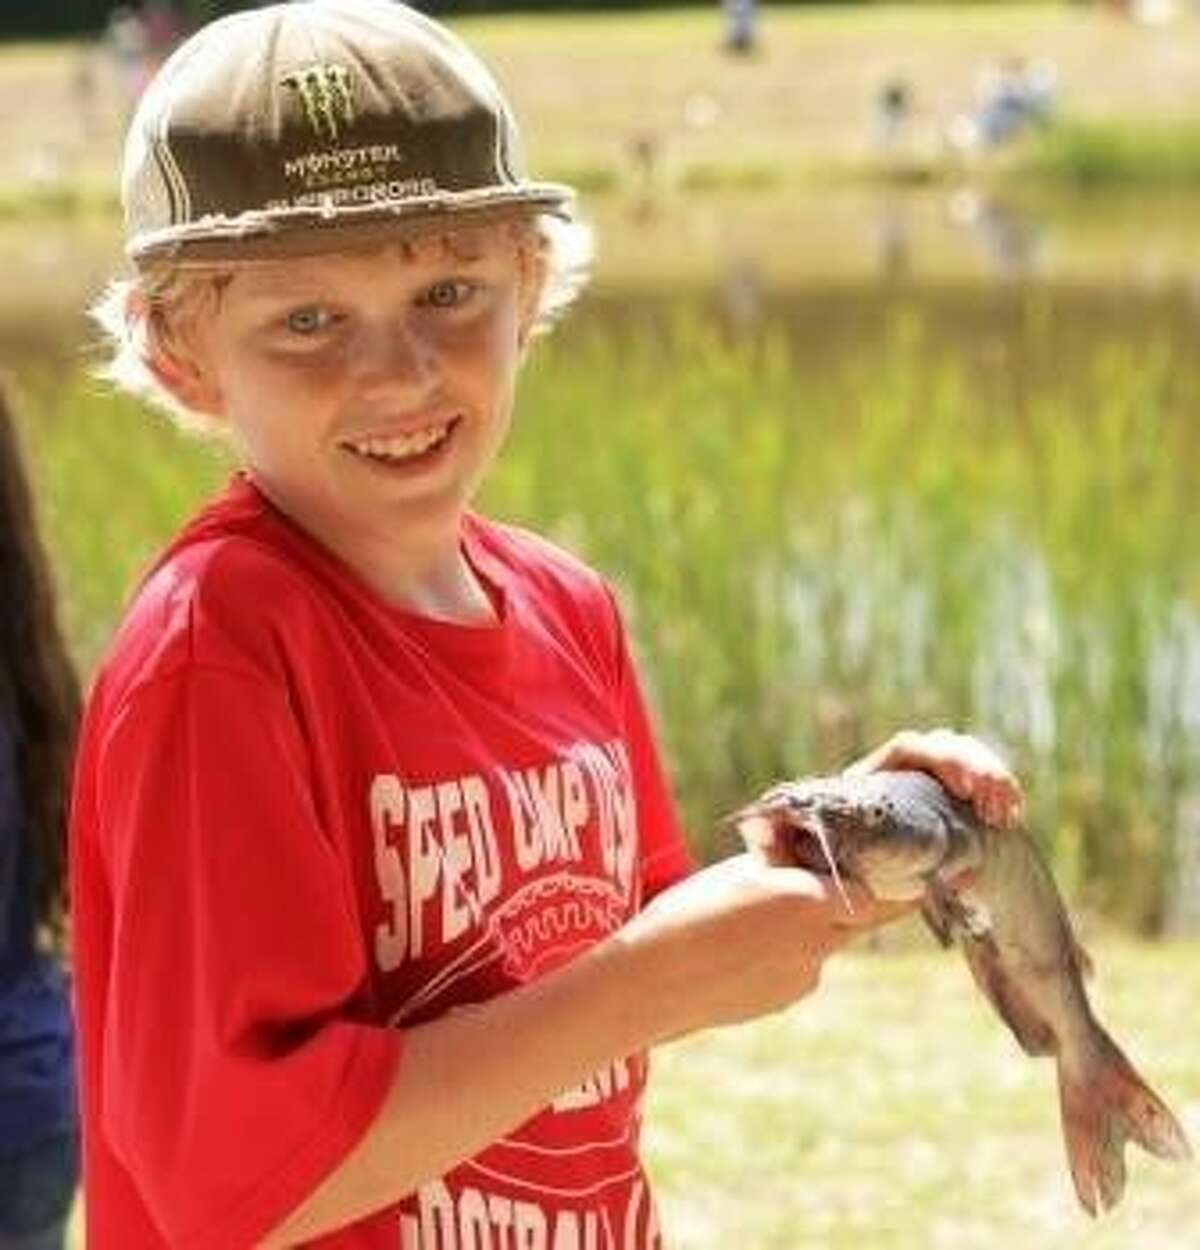 At the Friendswood Youth Fishing Derby, prizes will be awarded to the kids who catch the largest fish in their age group, smallest fish and most fish caught.